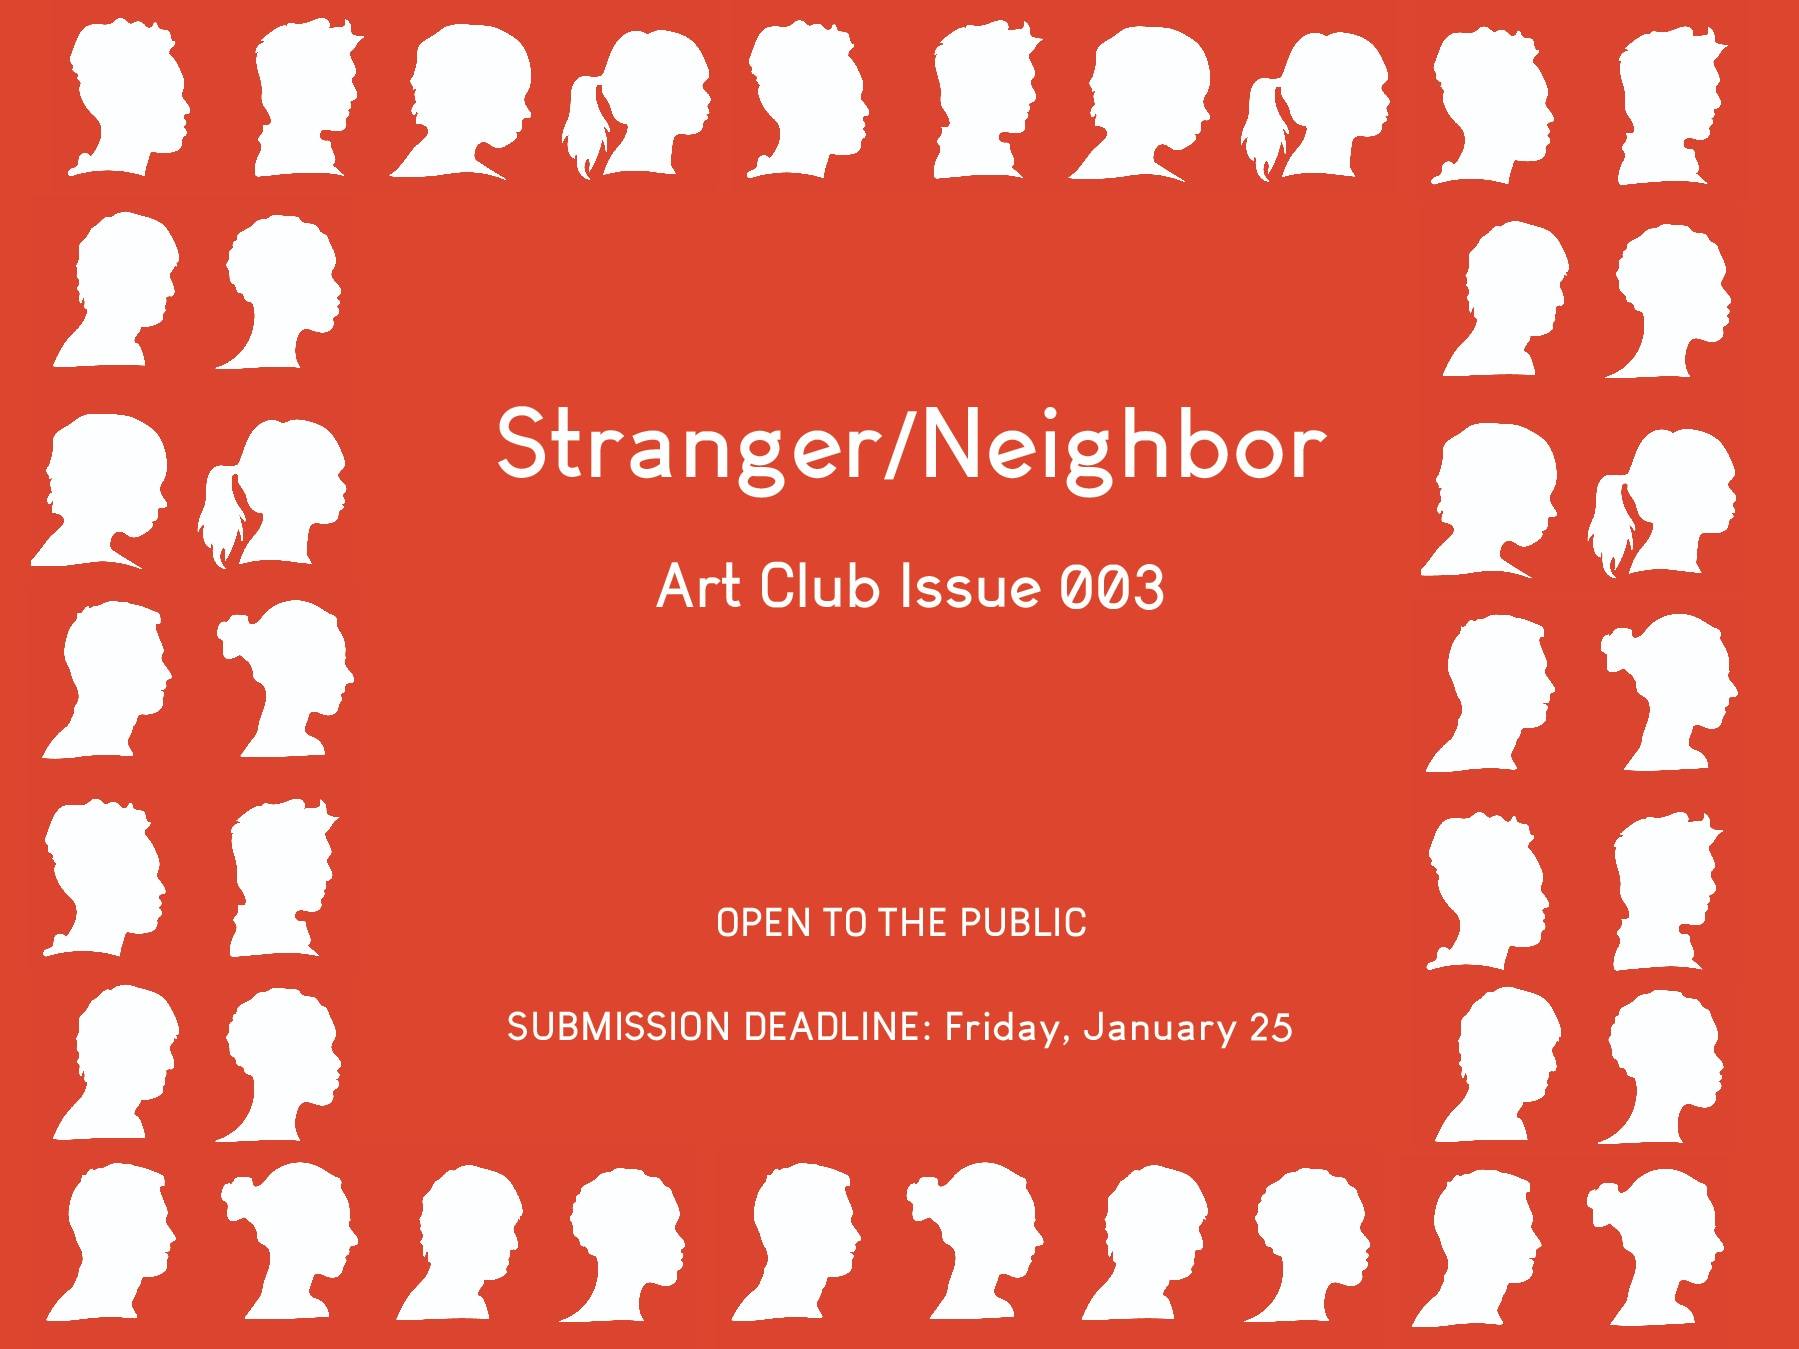 STRANGER/NEIGHBOR - ART CLUB ISSUE 003